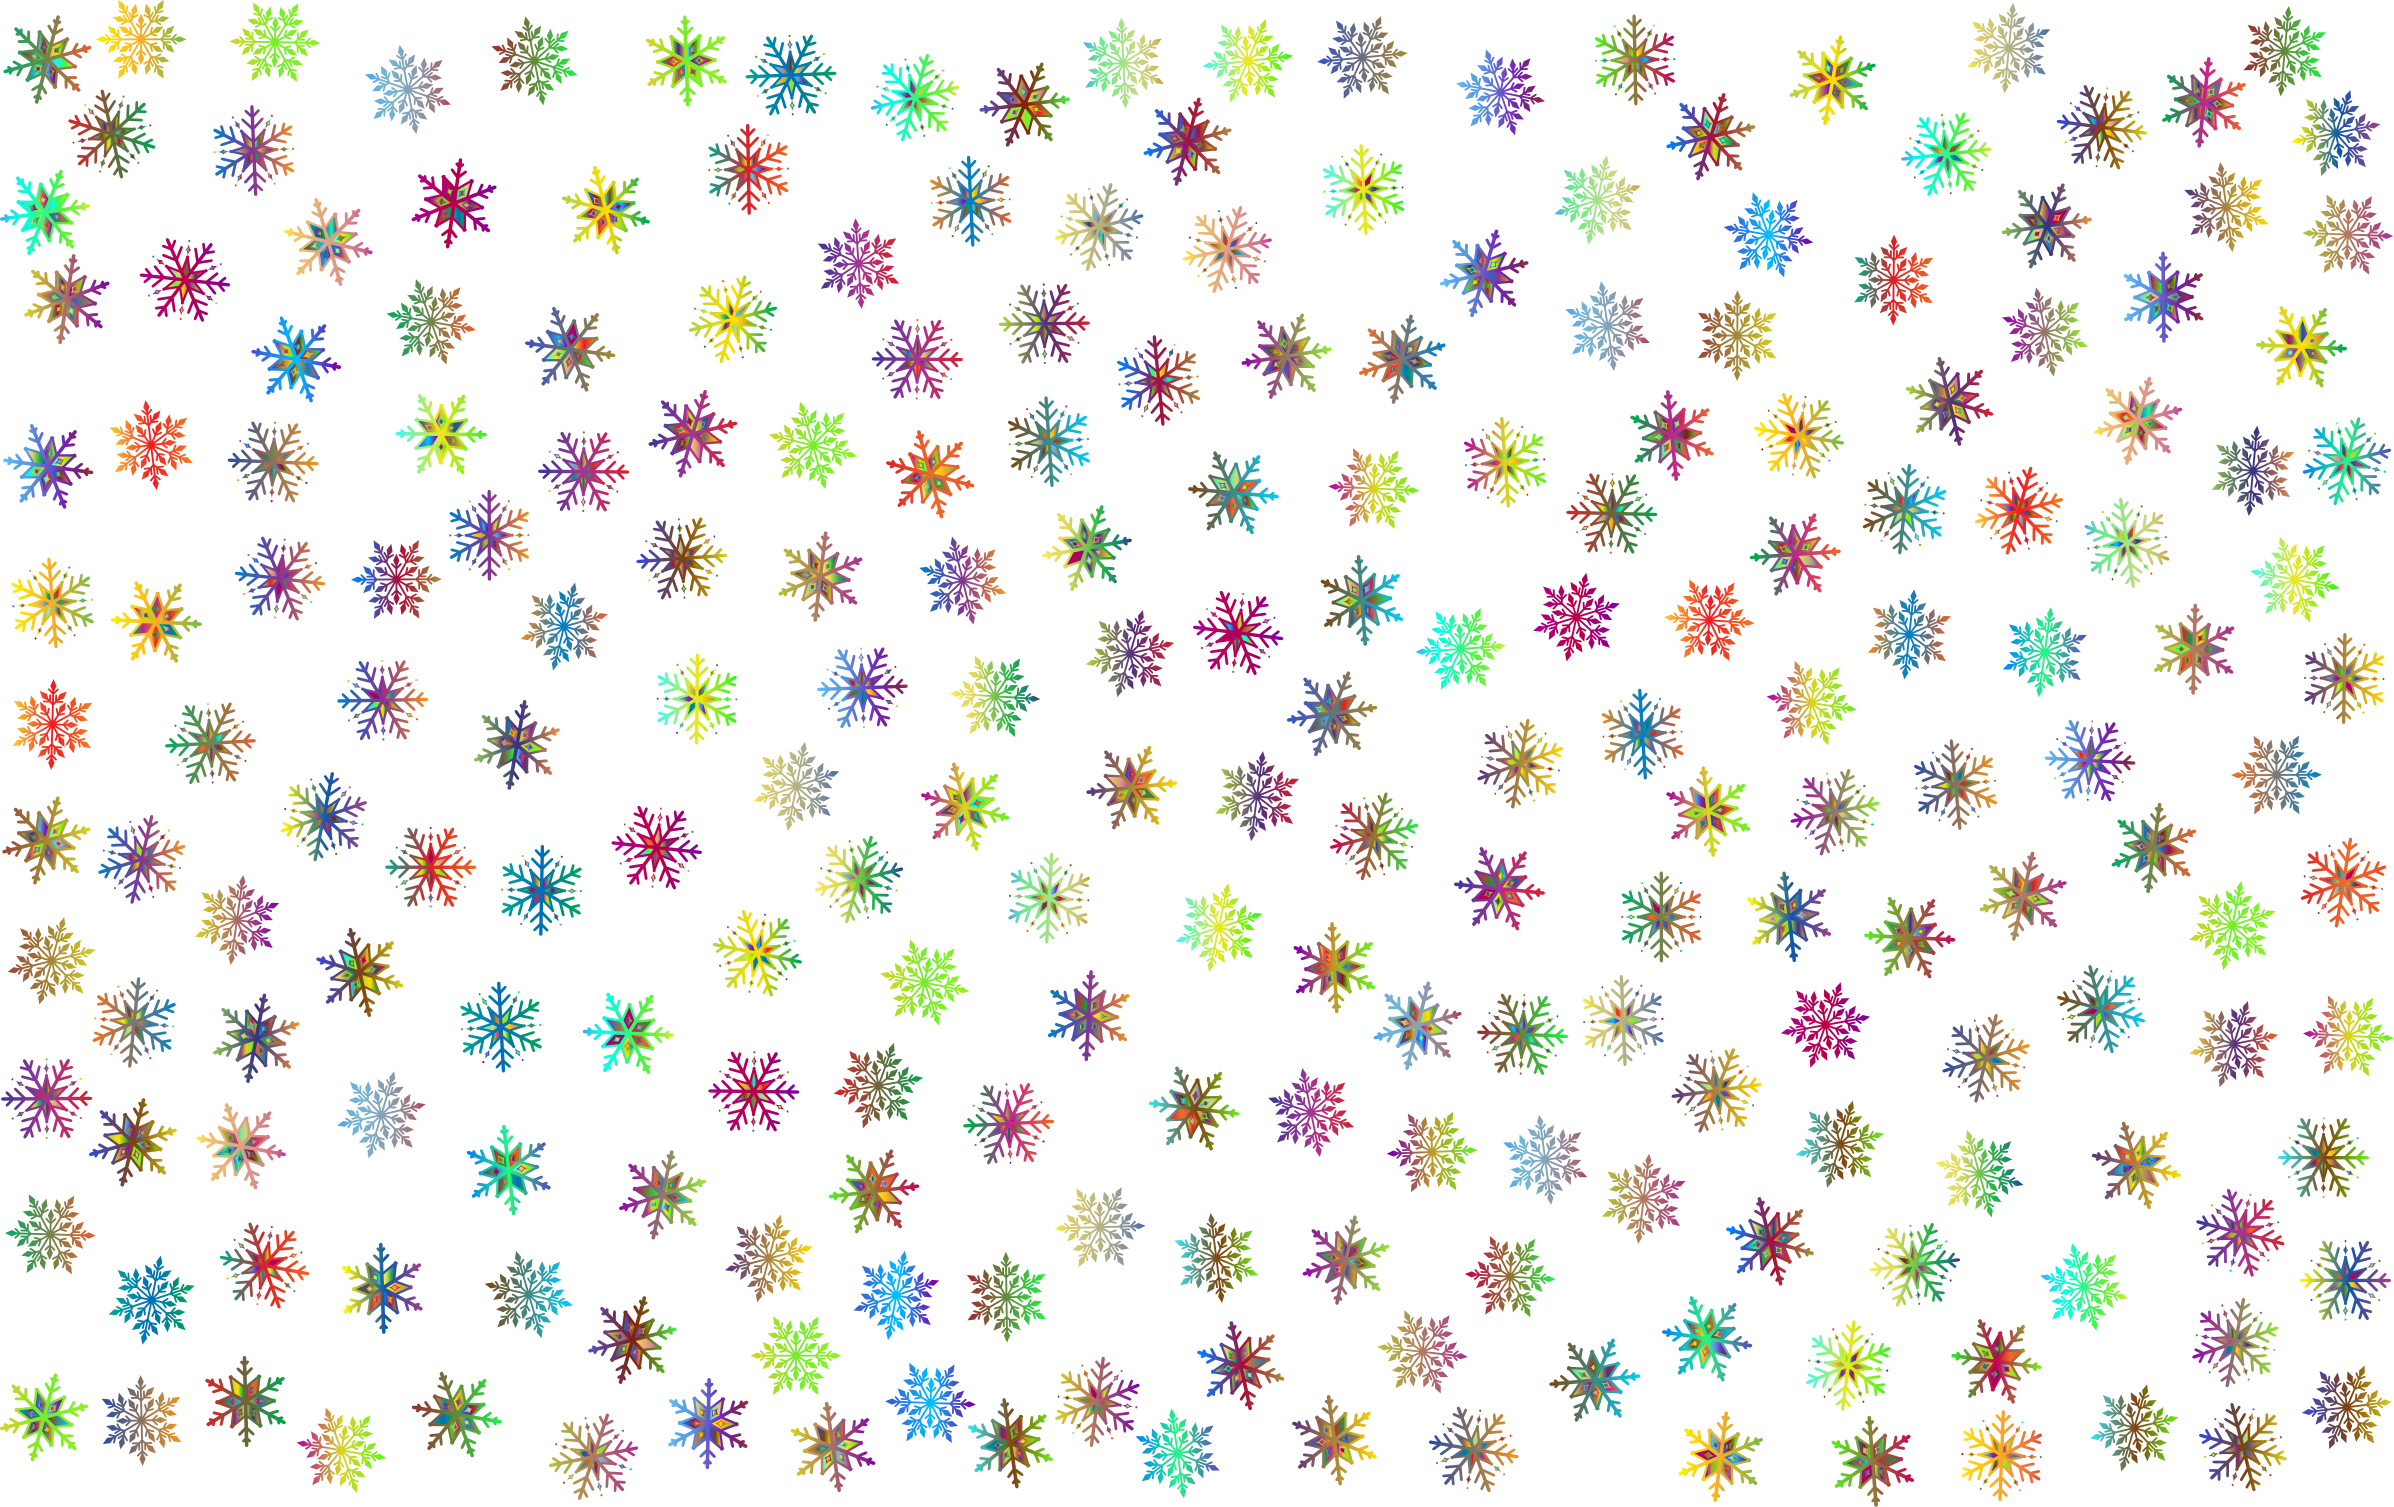 Clipart prismatic snowflakes pattern 3 no background